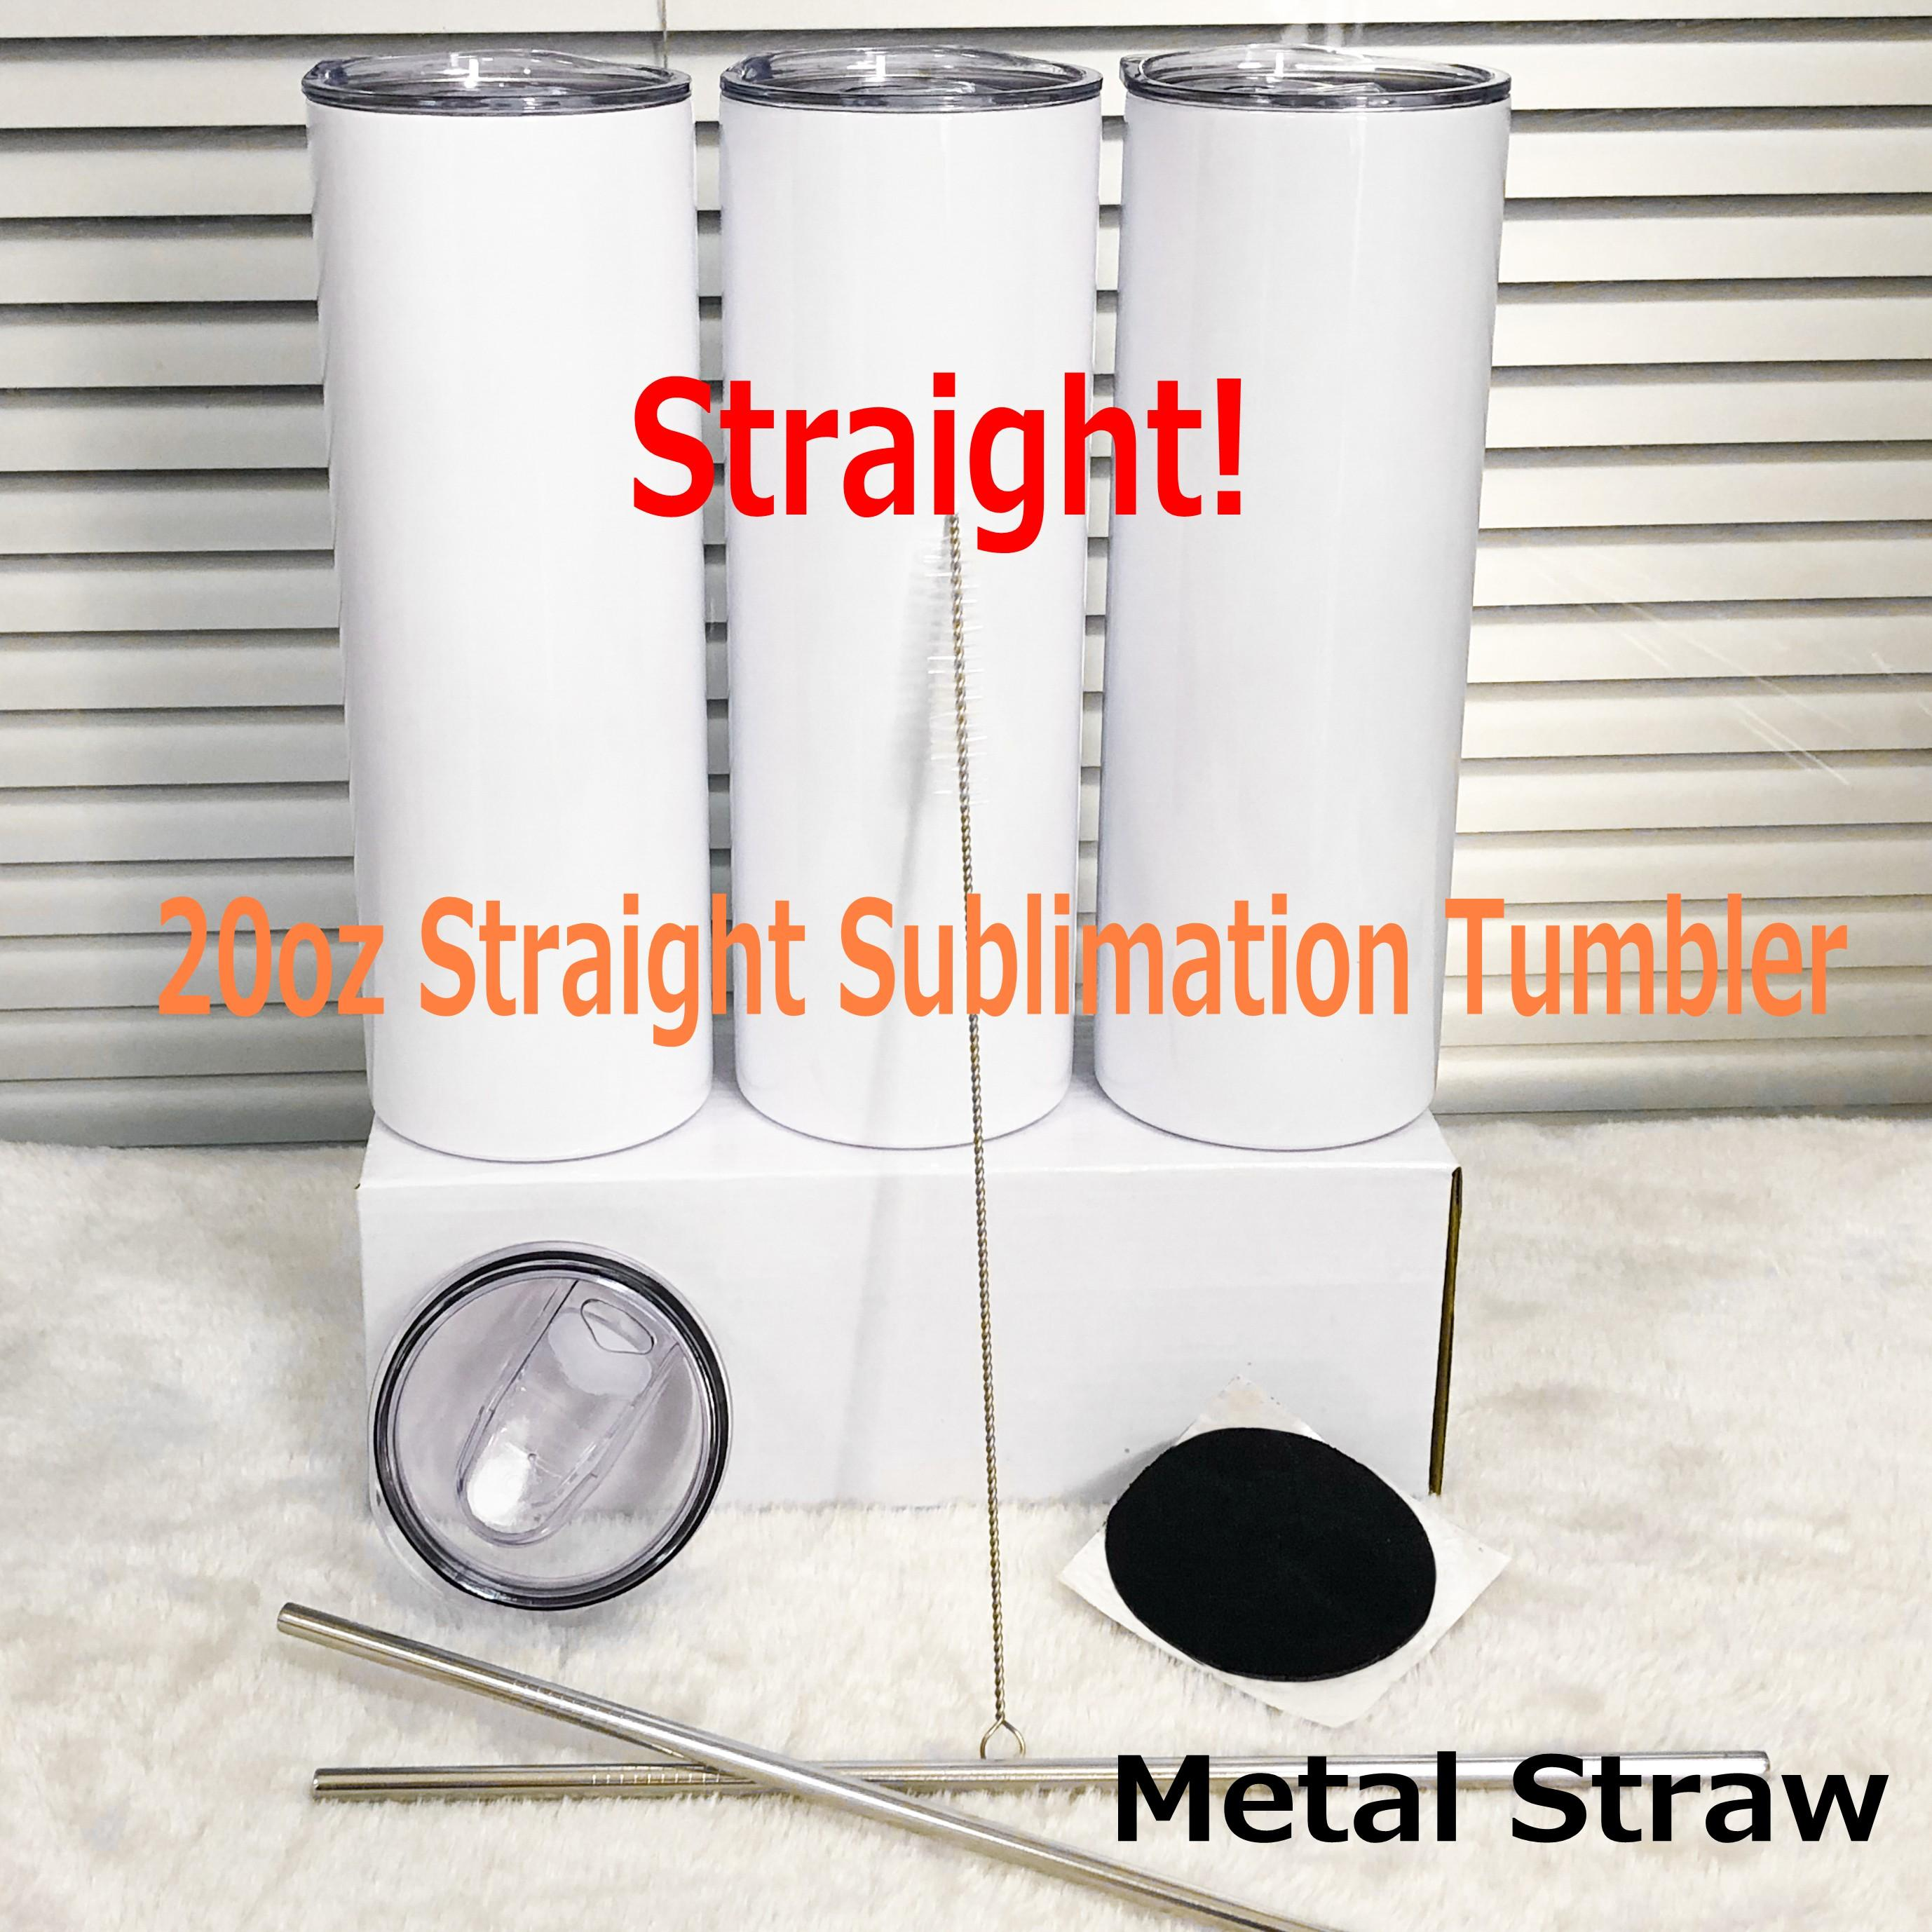 DIY sublimation Water Bottle tumblers 20oz straight tumblers metal straw stainless steel slim tumble vacuum insulated travel mug gifts